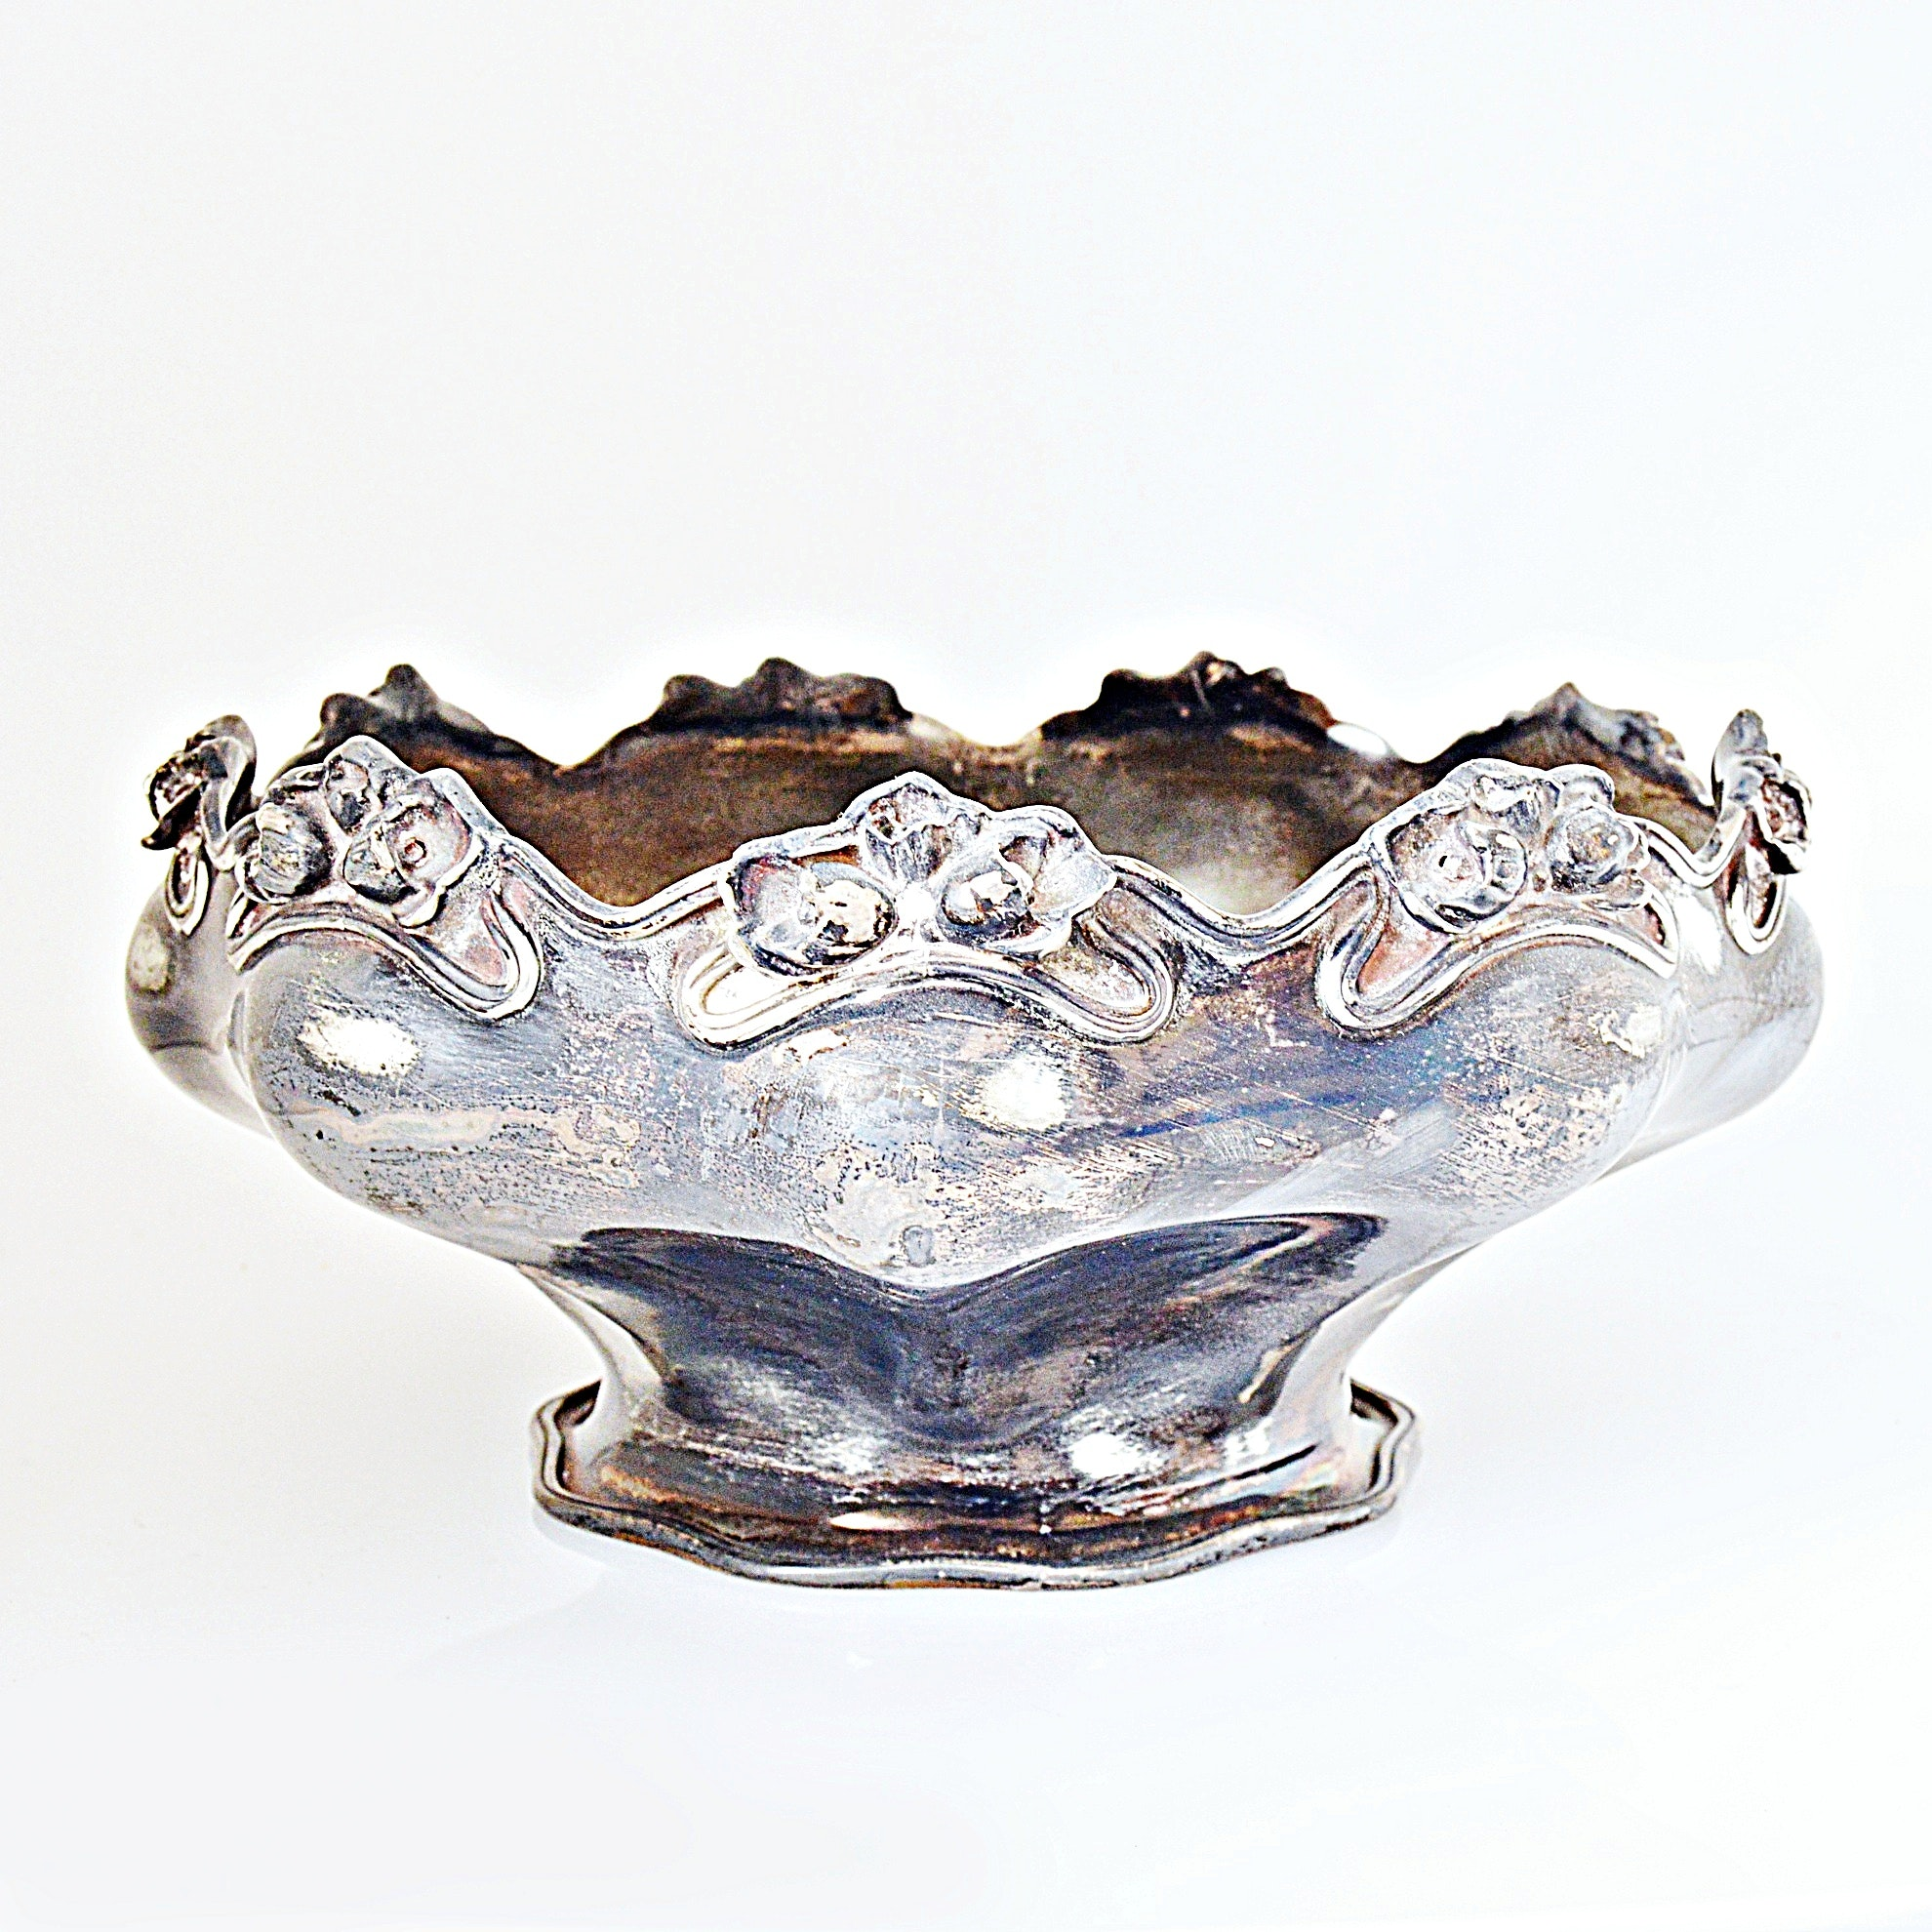 Art Nouveau Style Silver-Plated Centerpiece Bowl